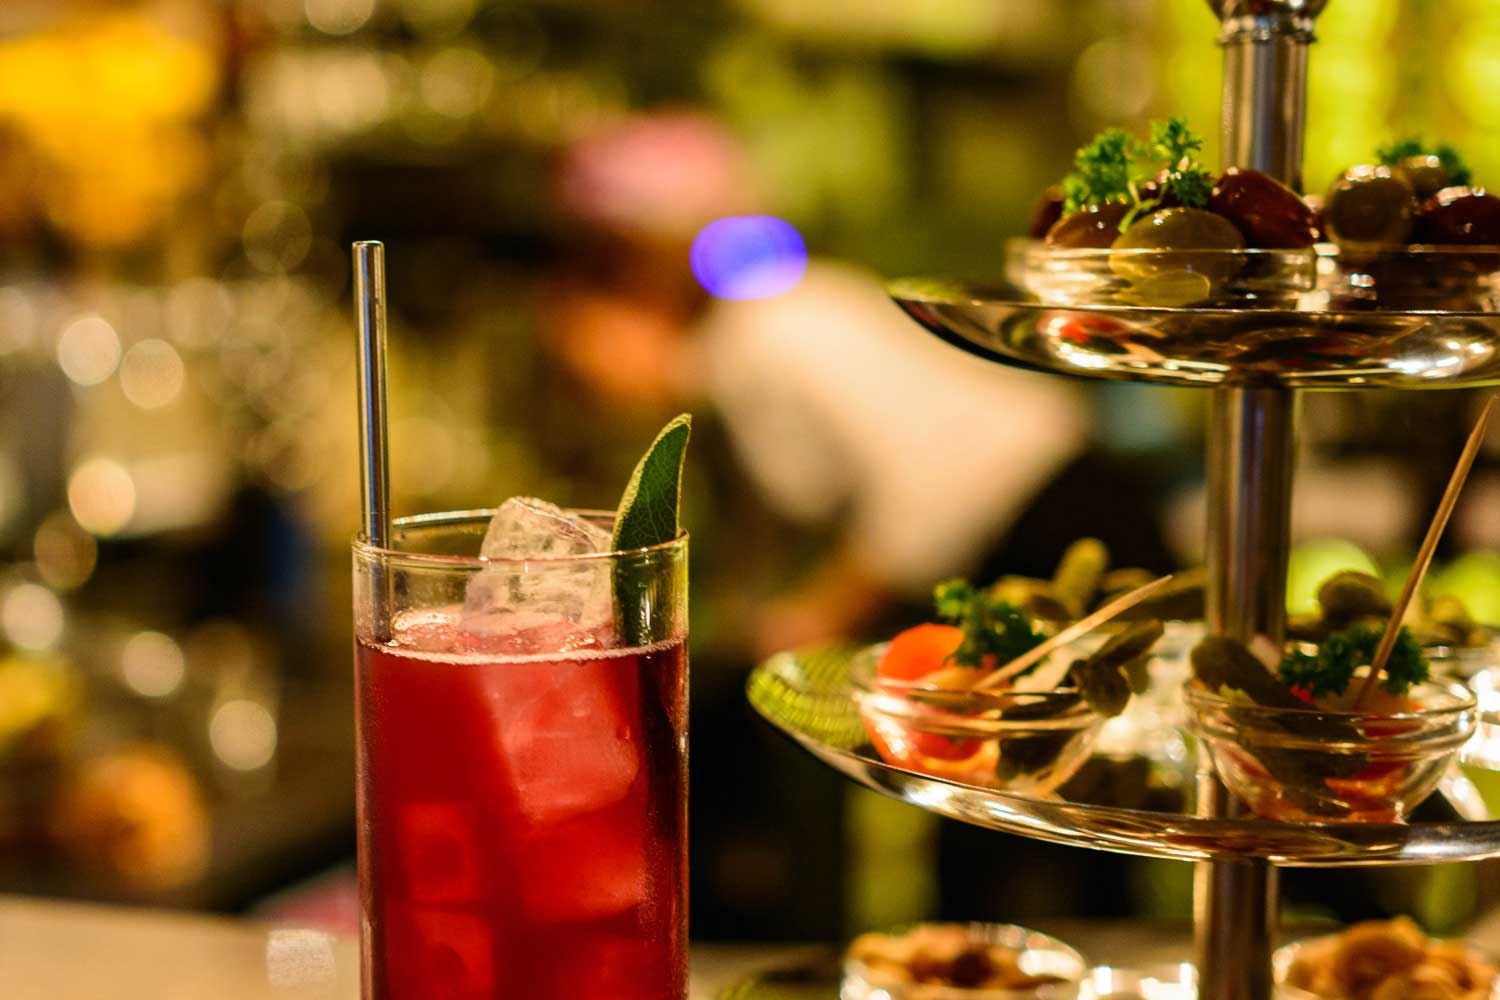 A cocktail with a metal straw next to a display of food